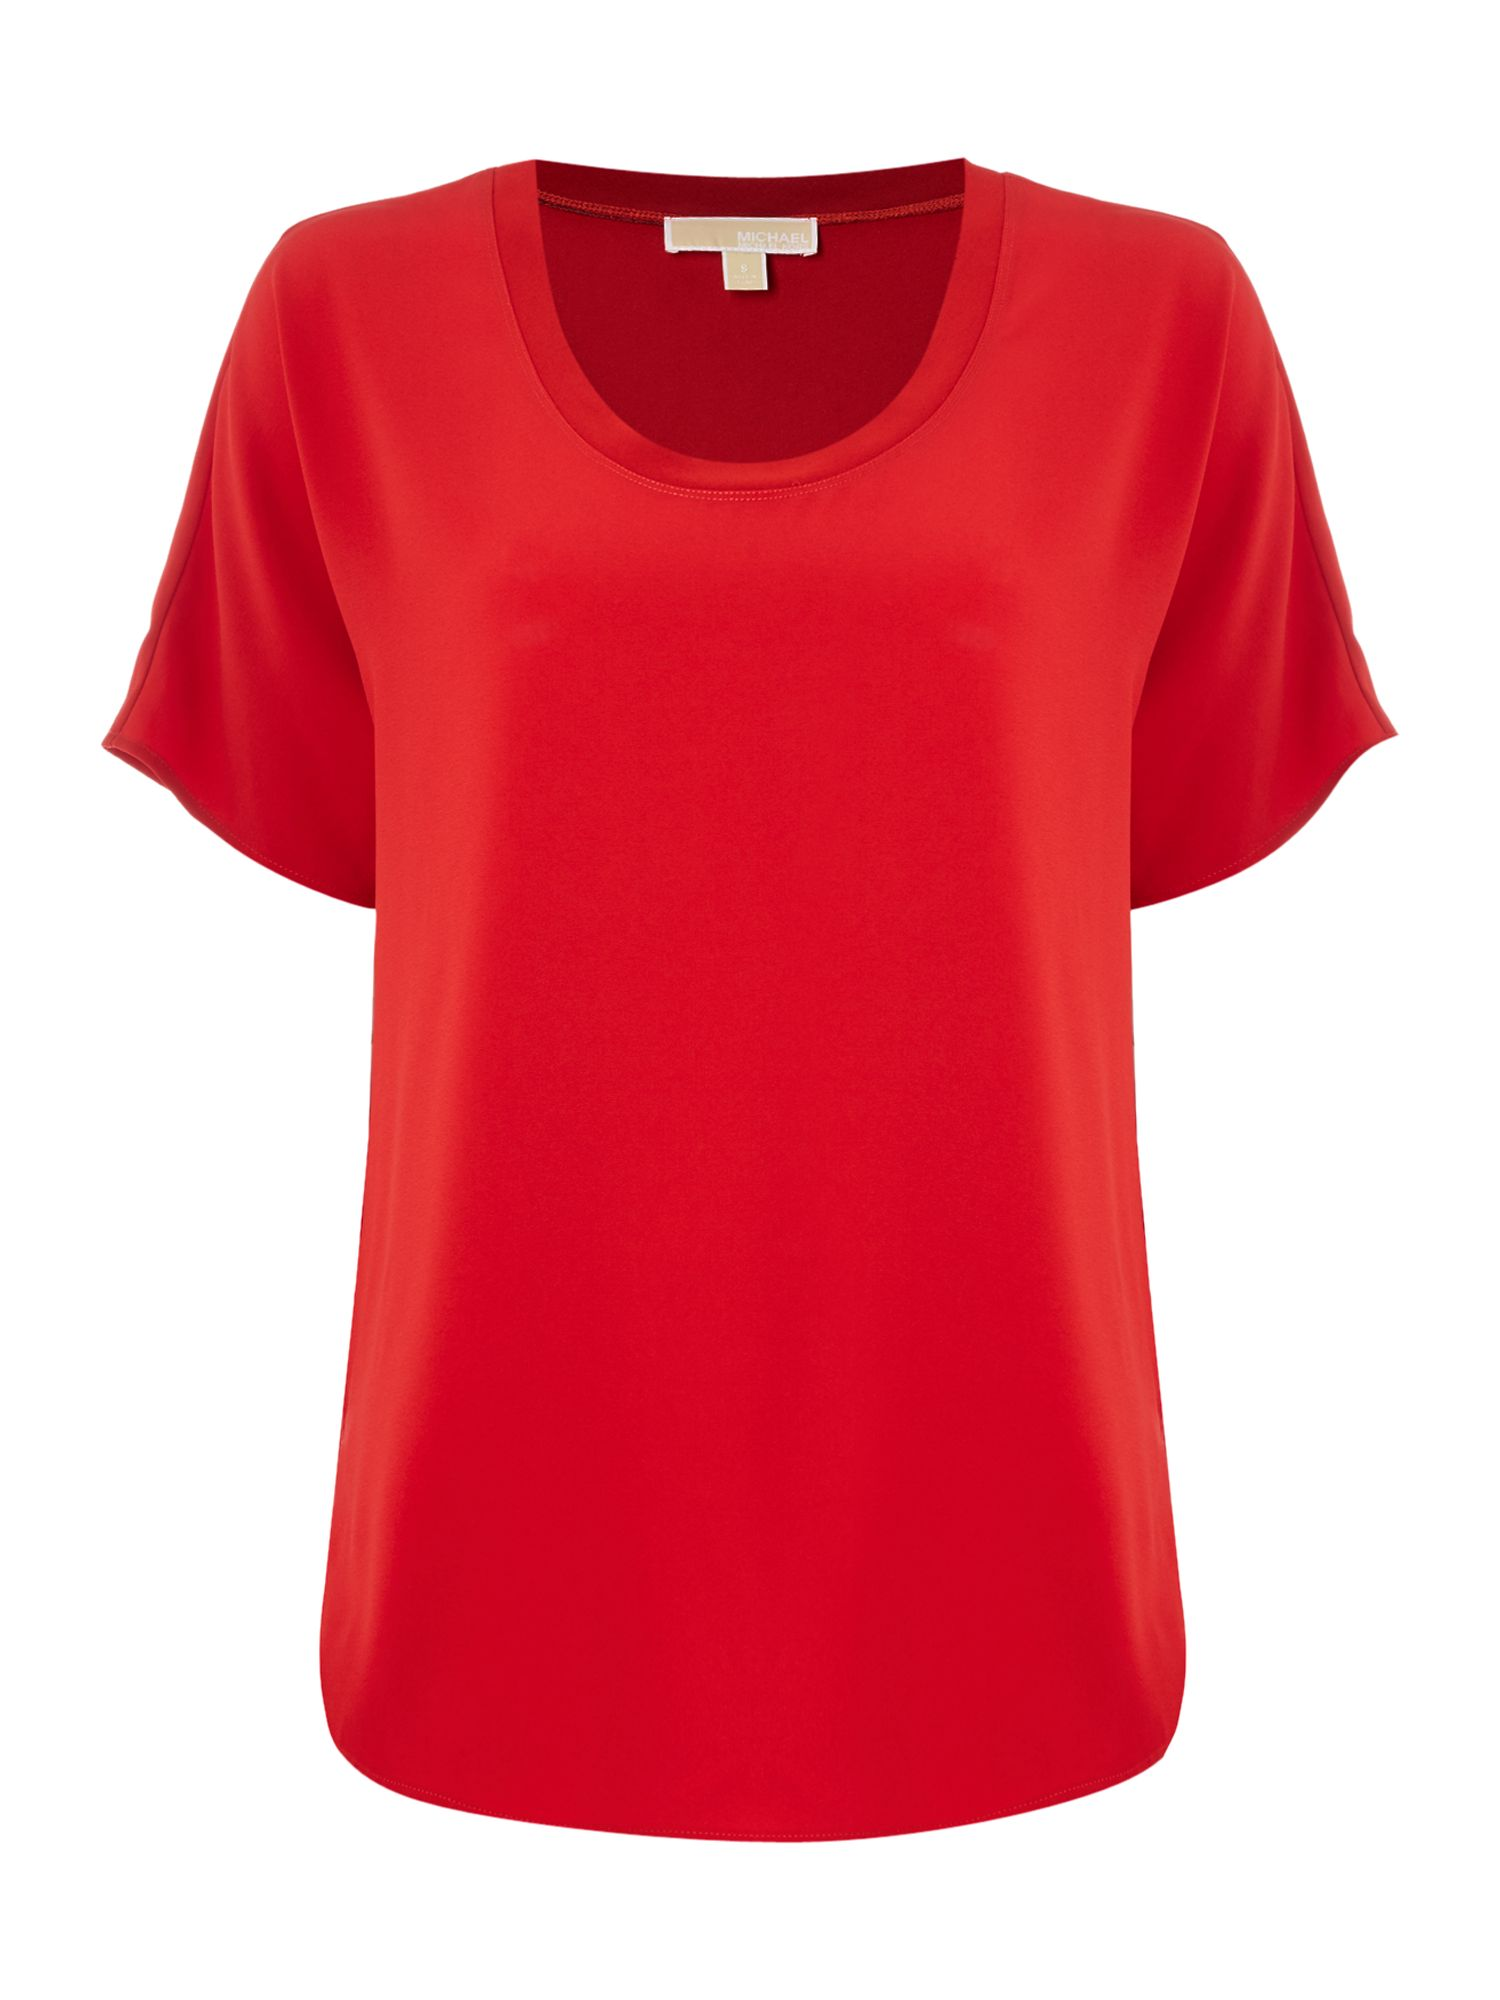 Michael Kors Cowl Neck Short Sleeve Top, Red